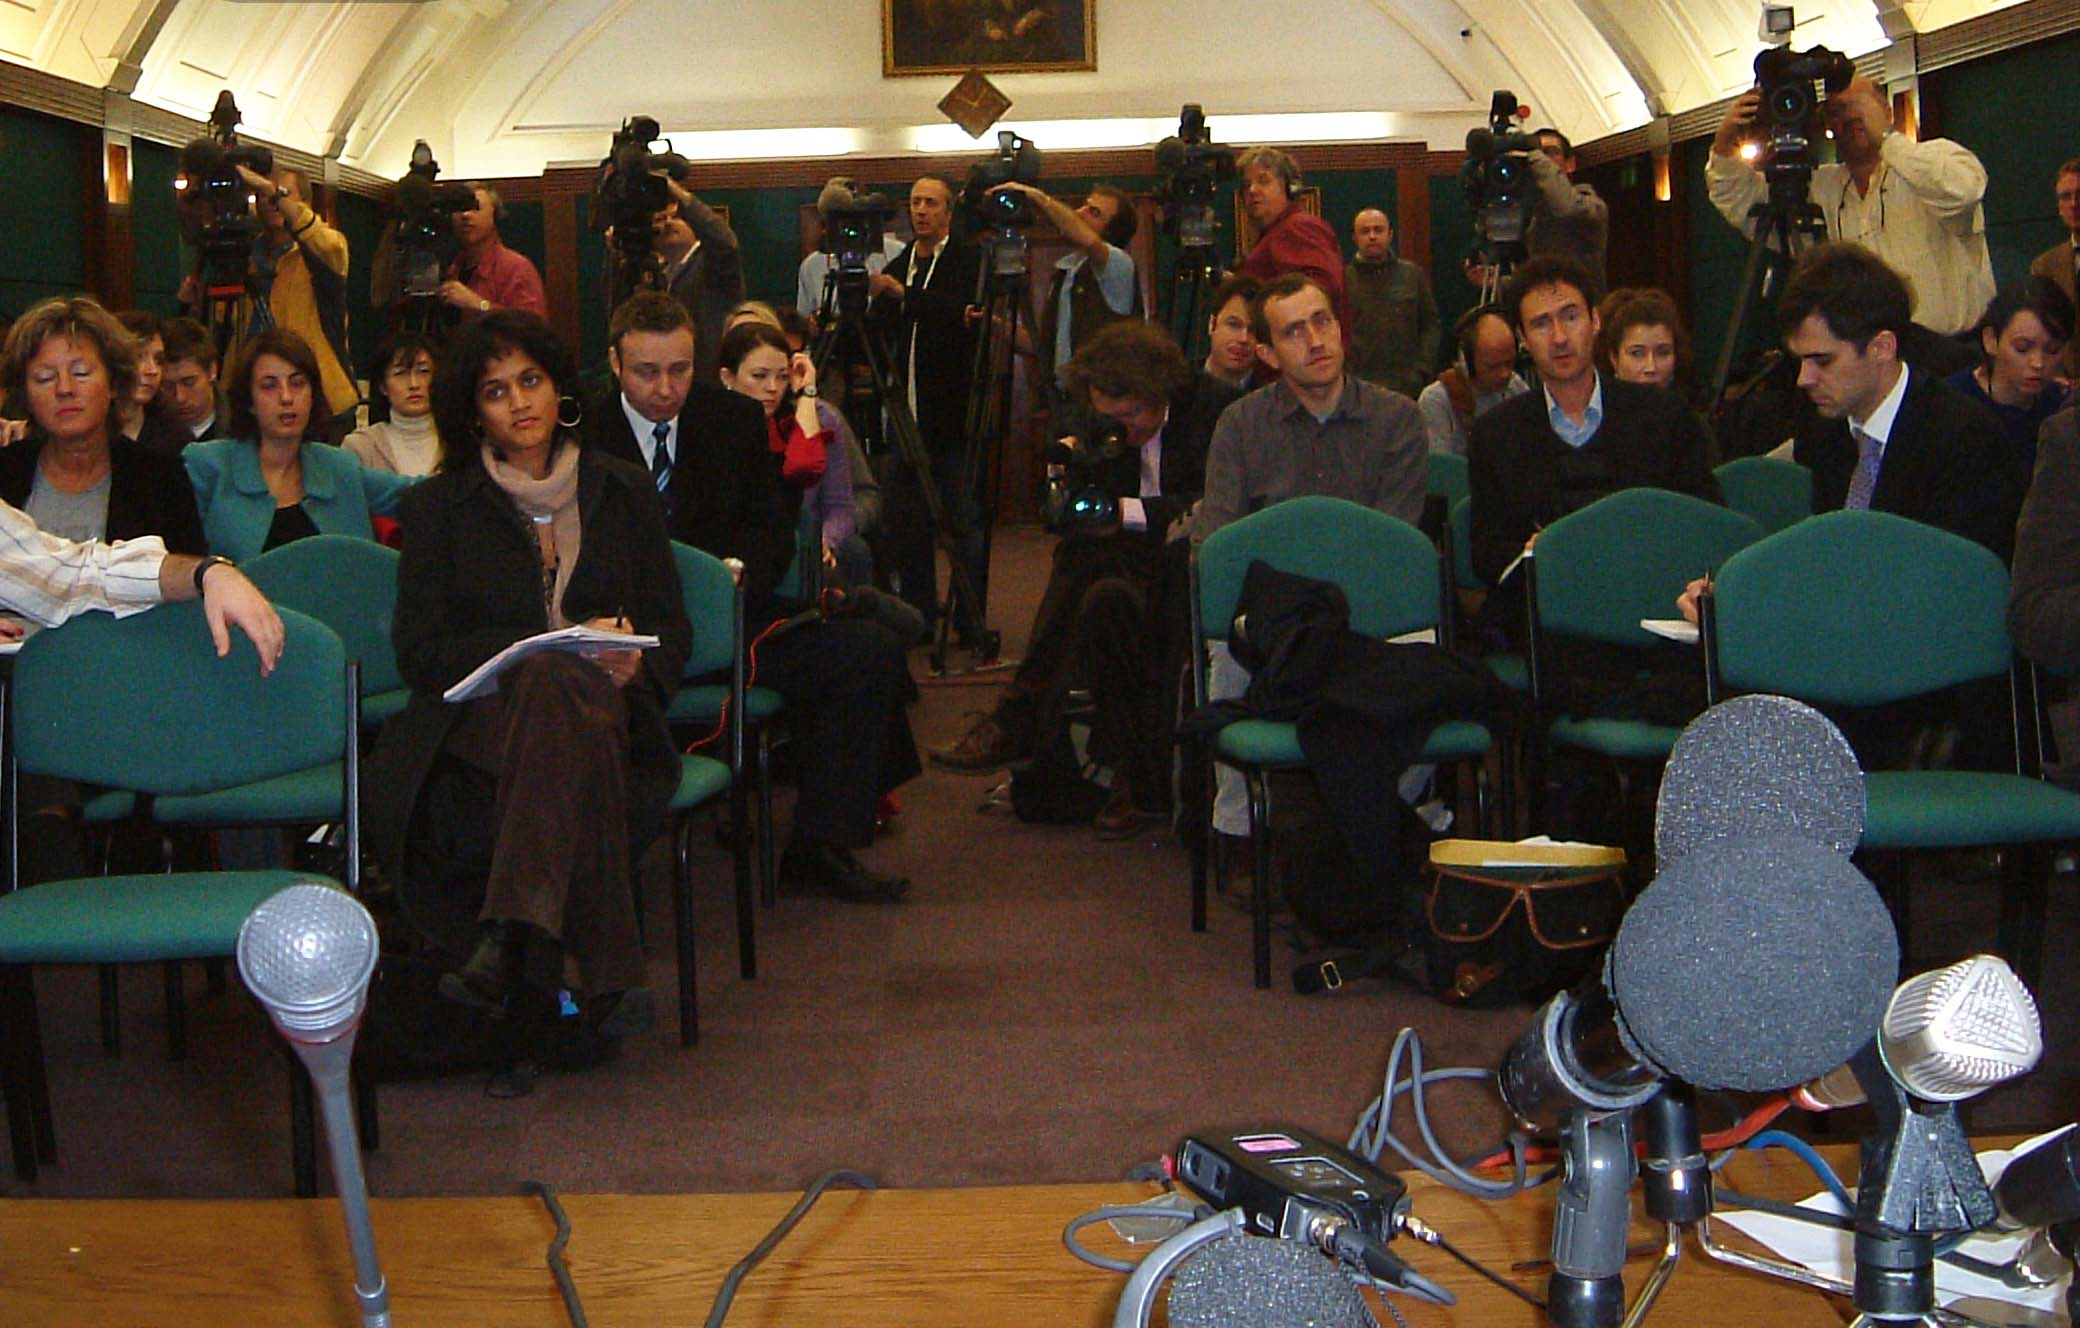 room unexpected media figure strictly talking press conferences gatherings proper